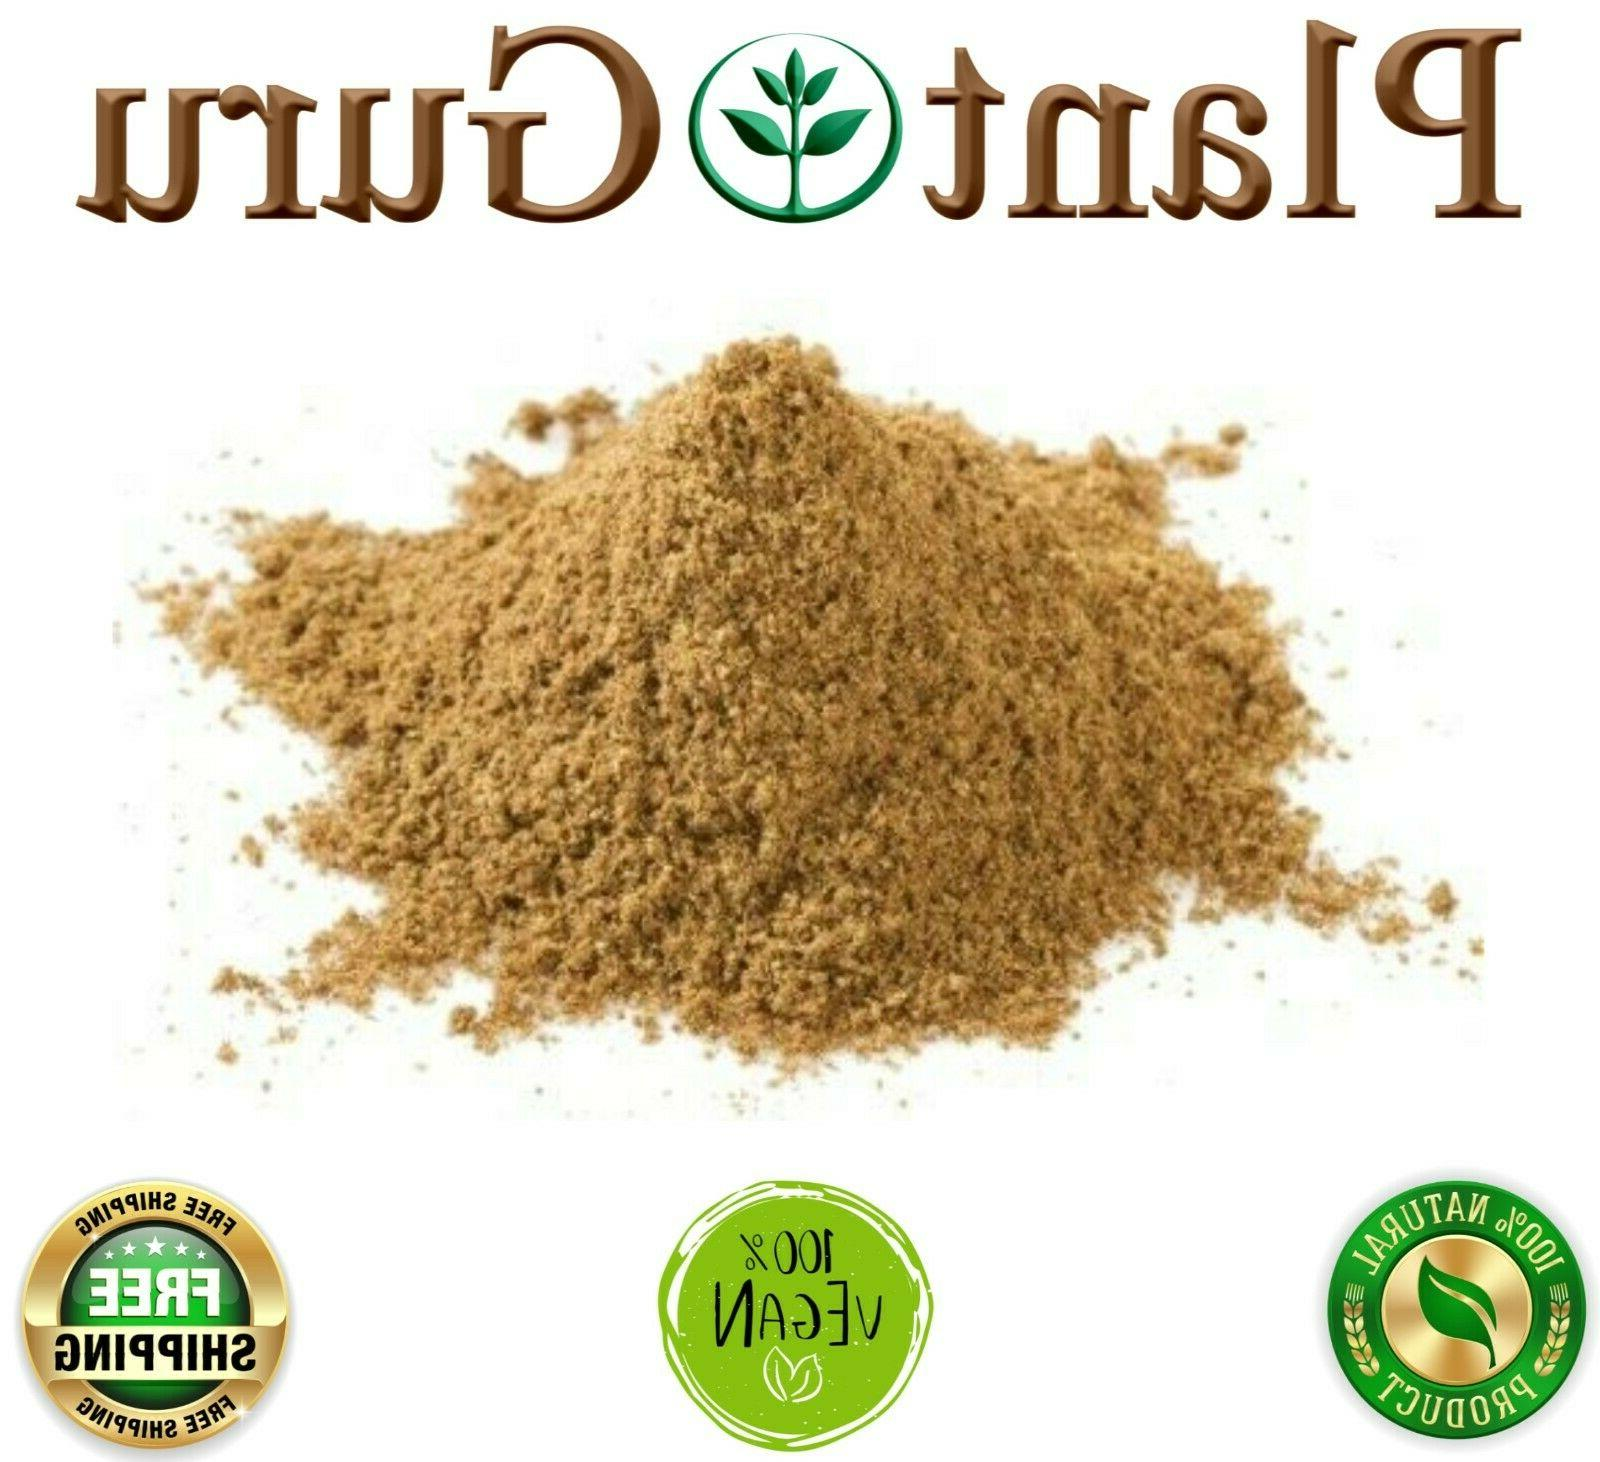 Ground Flax Powder CHOOSE From BROWN or Meal